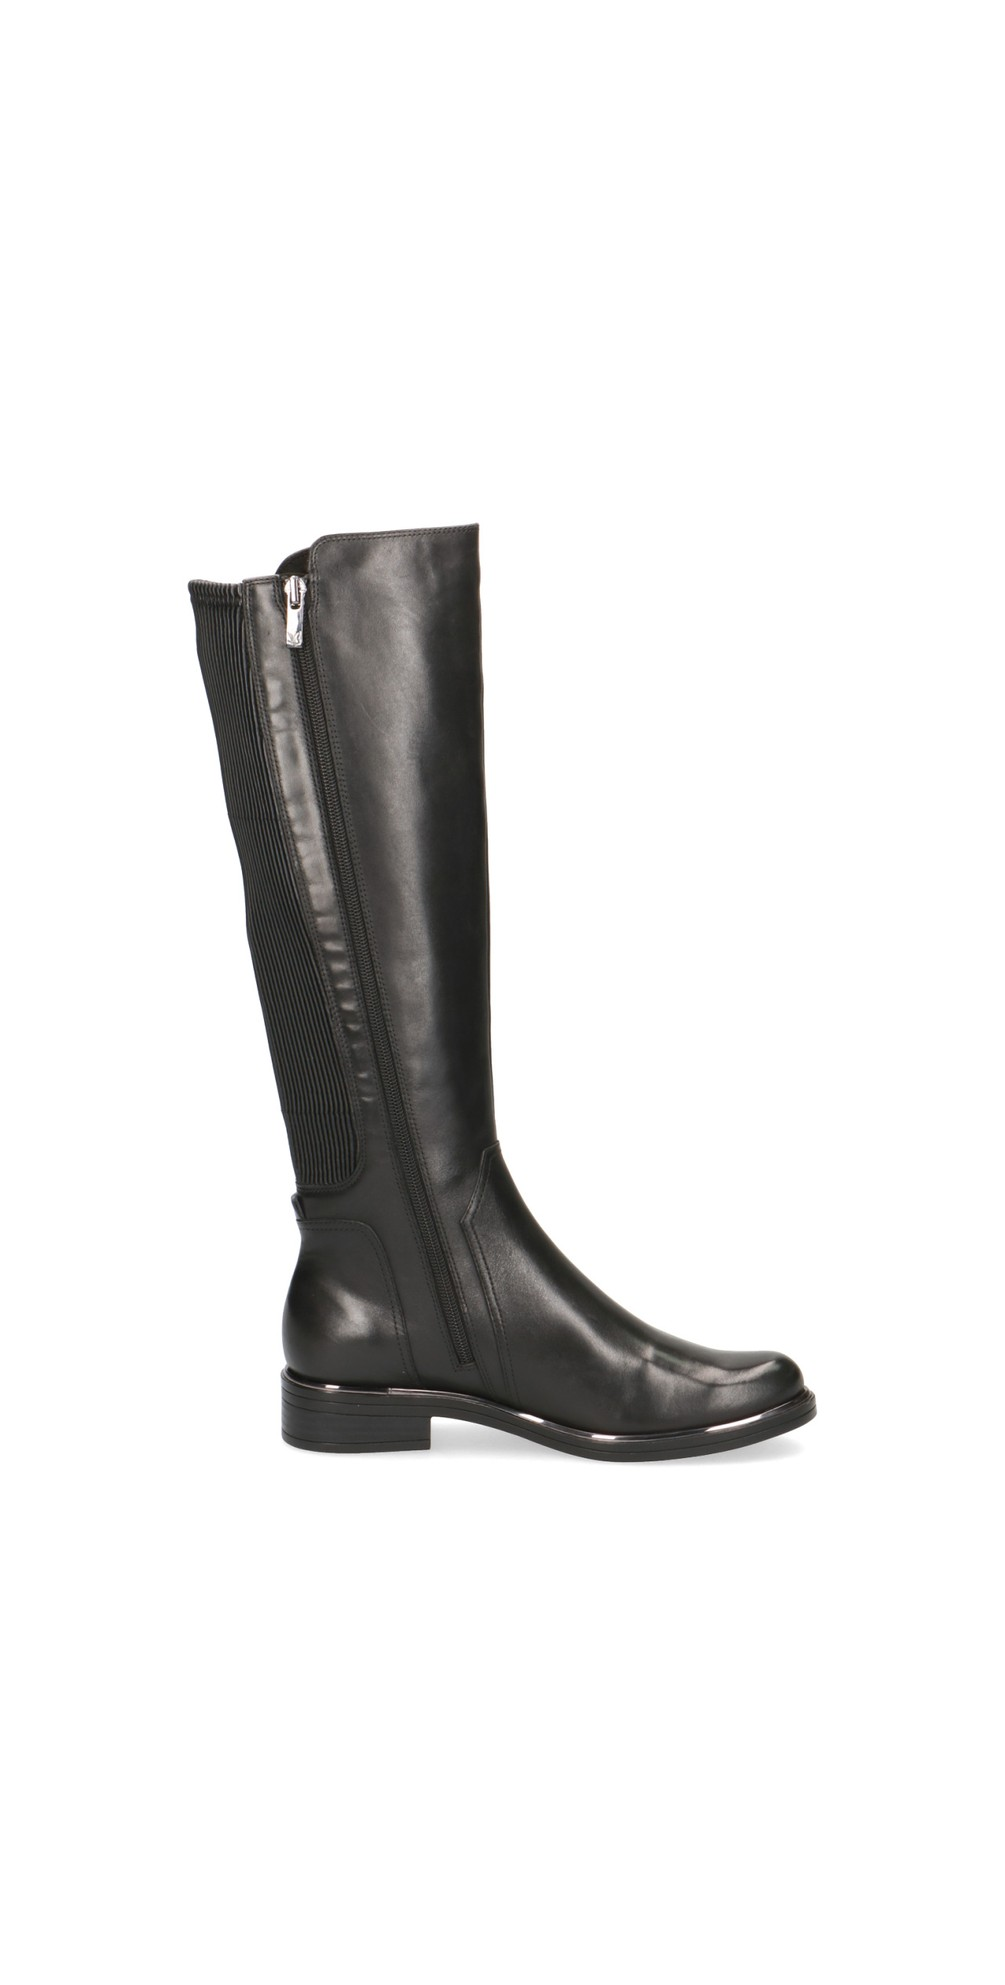 Joleen Generous Calf Fitting Leather Boot main image